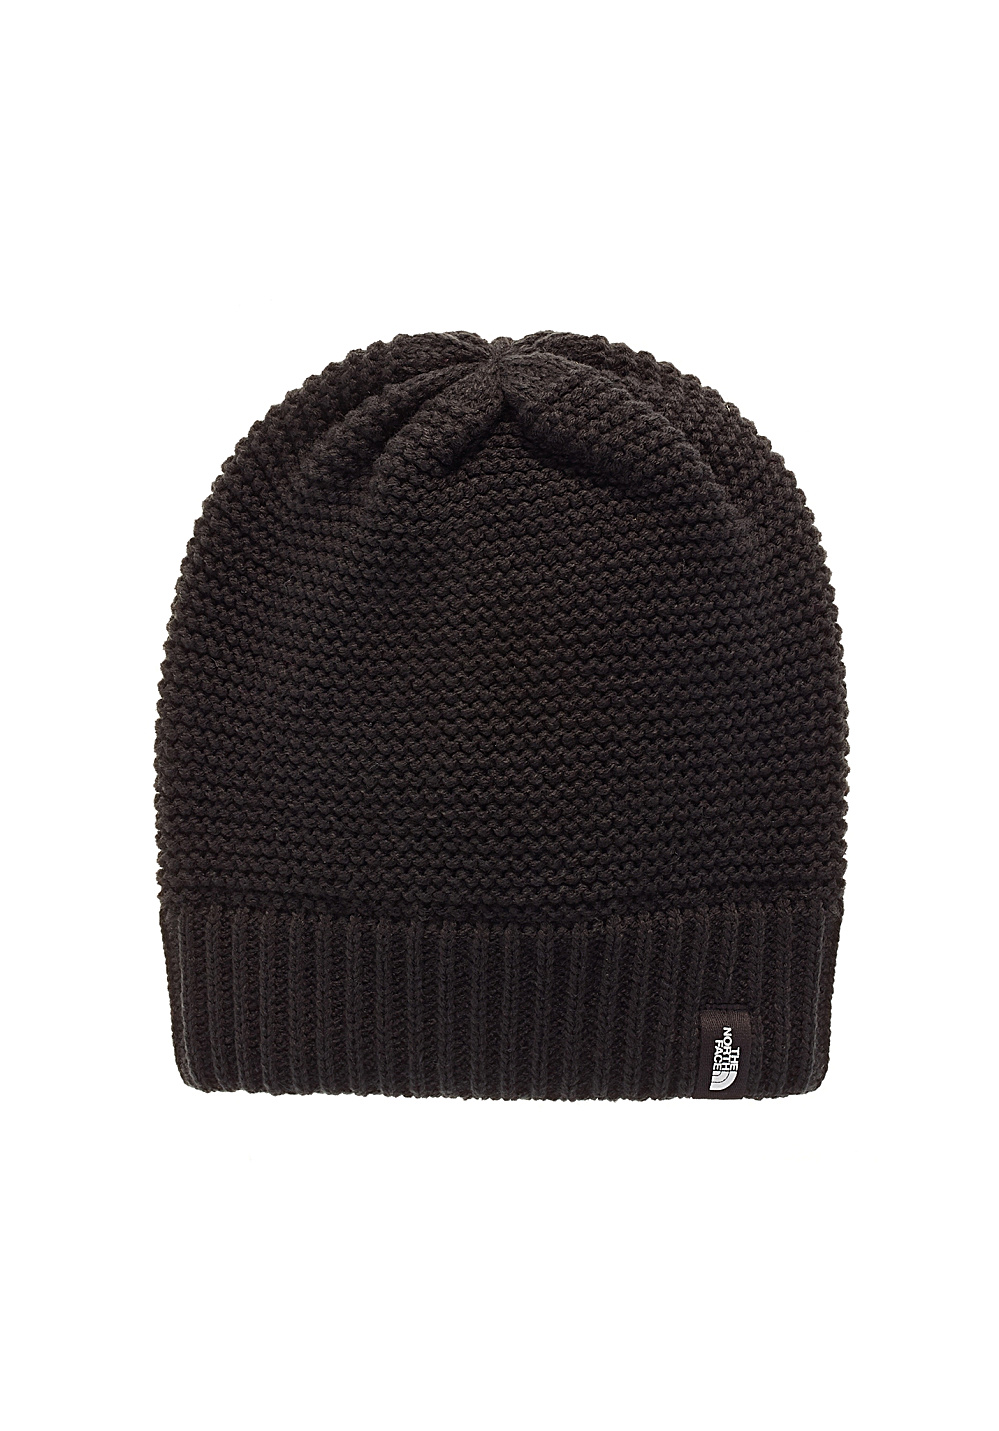 ... THE NORTH FACE Purrl Stitch - Beanie for Women - Black. Back to  Overview. 1  2. Previous ecb9673c0d0b